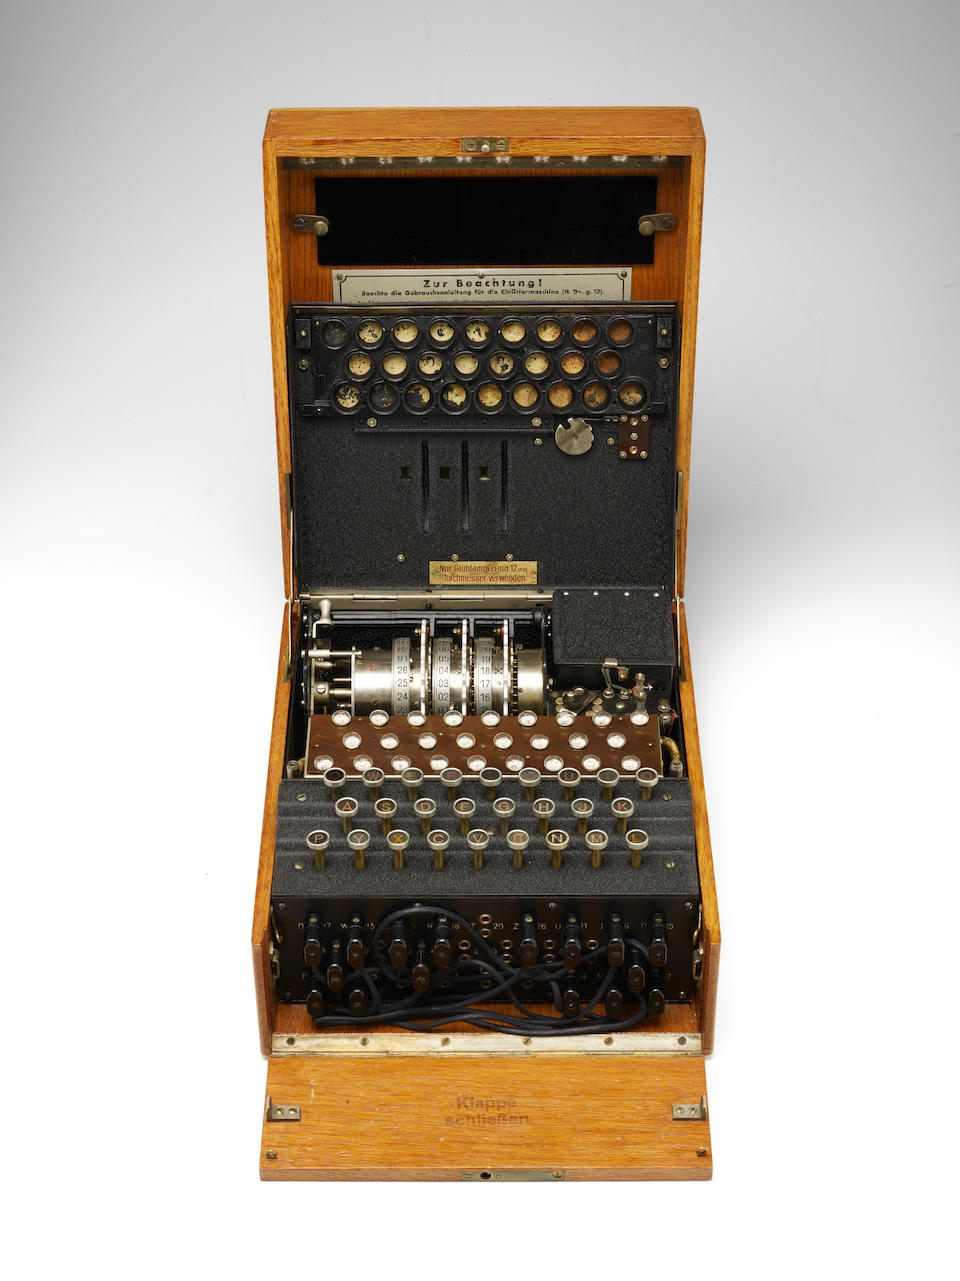 ENIGMA MACHINE A Rare 3-Rotor German Enigma I Enciphering Machine (aka Heeres Enigma), made by Heimsoeth und Rinke, Berlin, 1935.